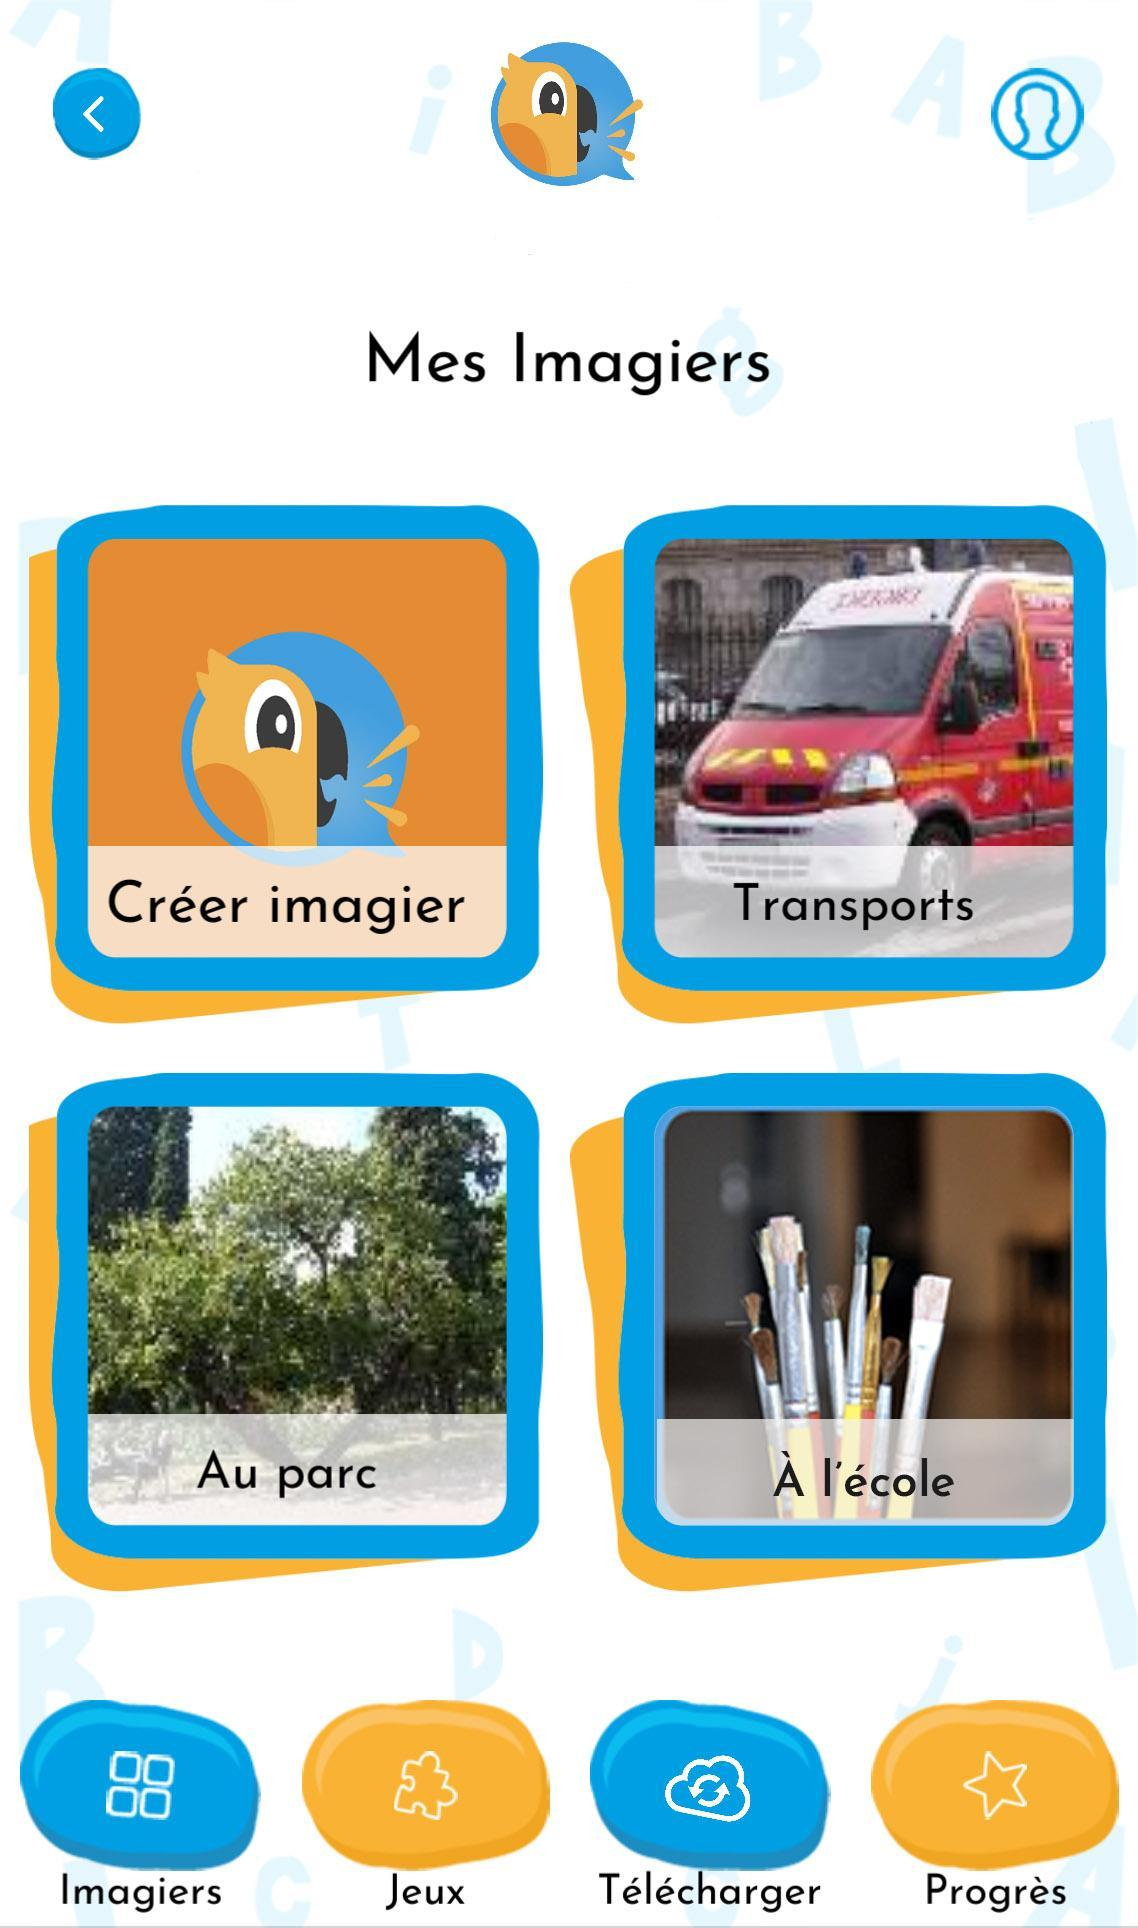 Blabook For Android - Apk Download concernant Imagier Ecole